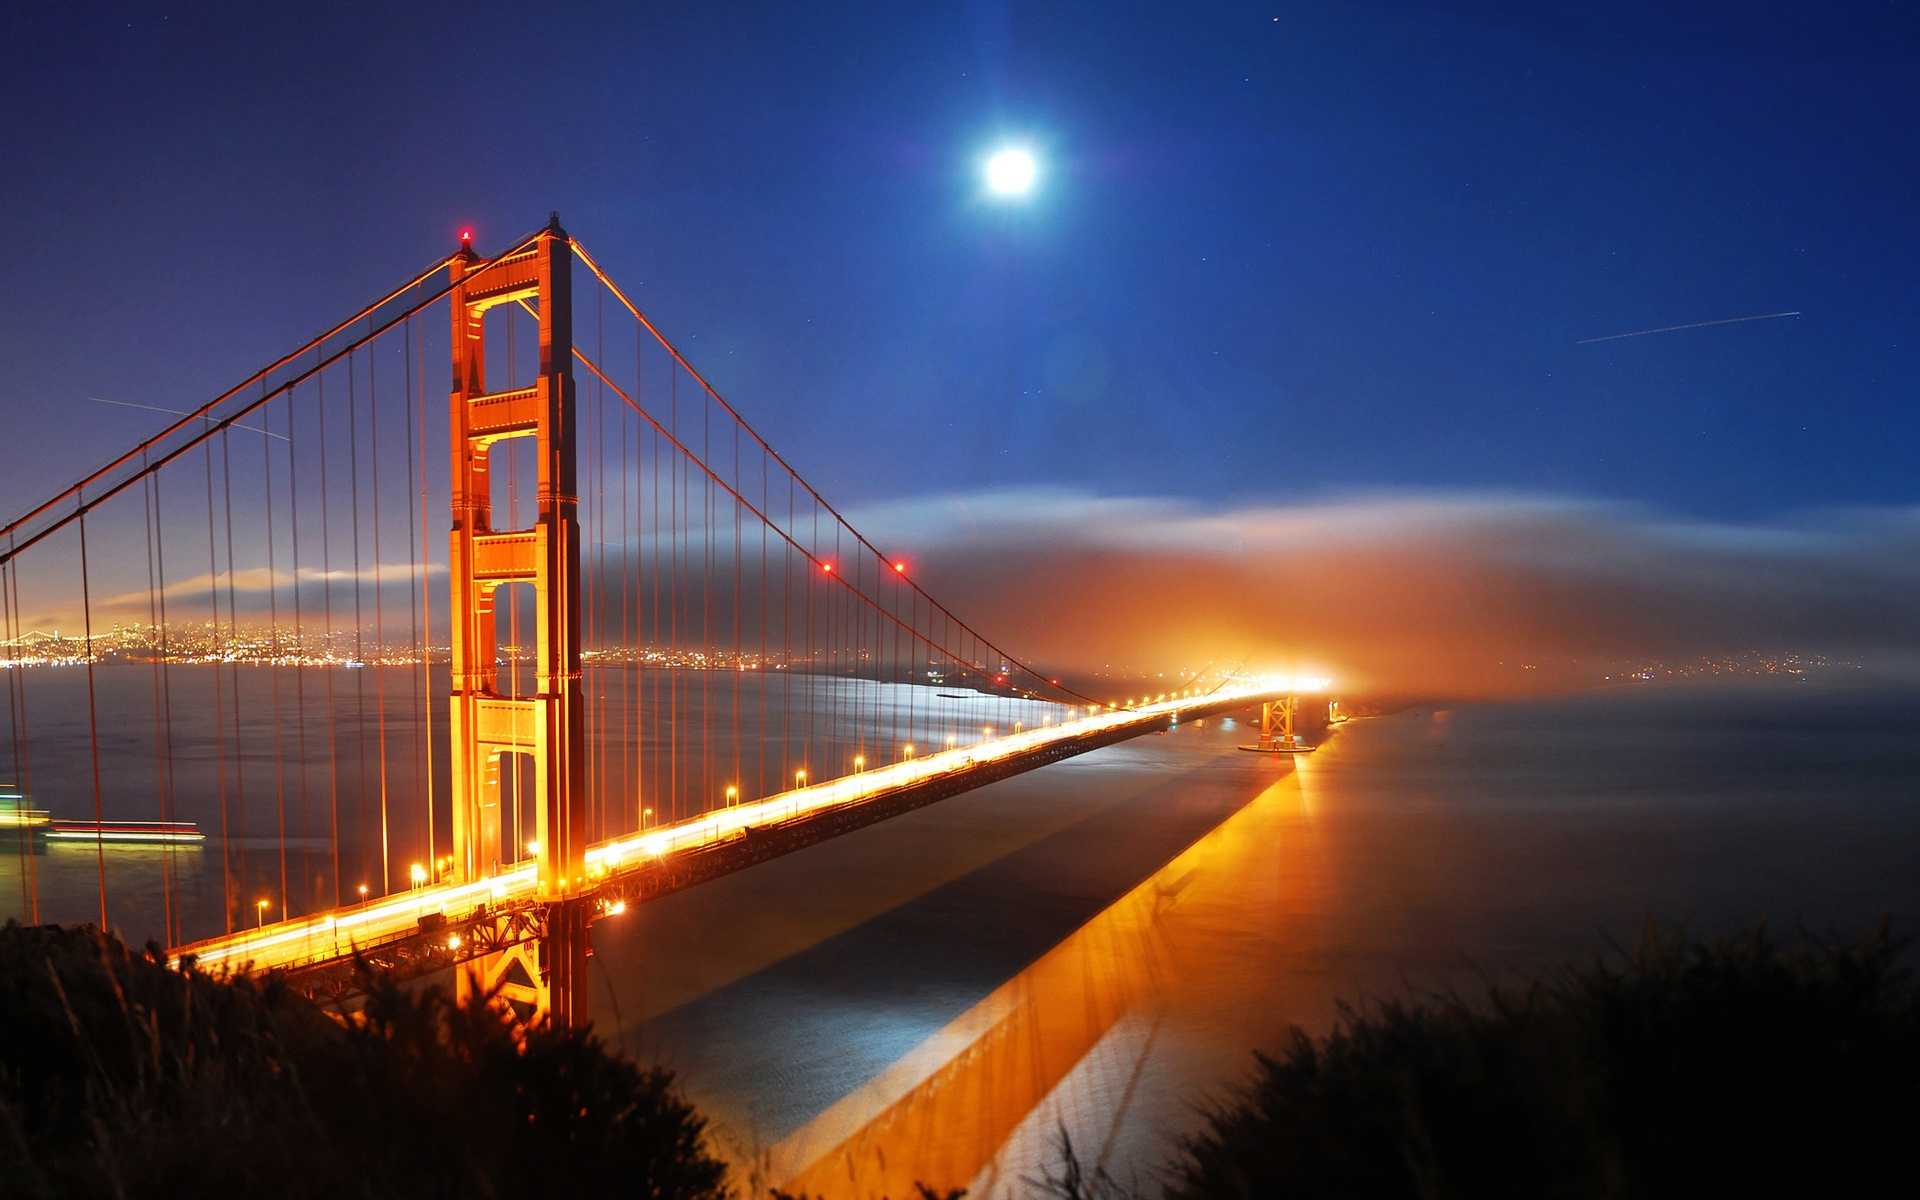 San Francisco Bridge Night Lights 402.57 Kb